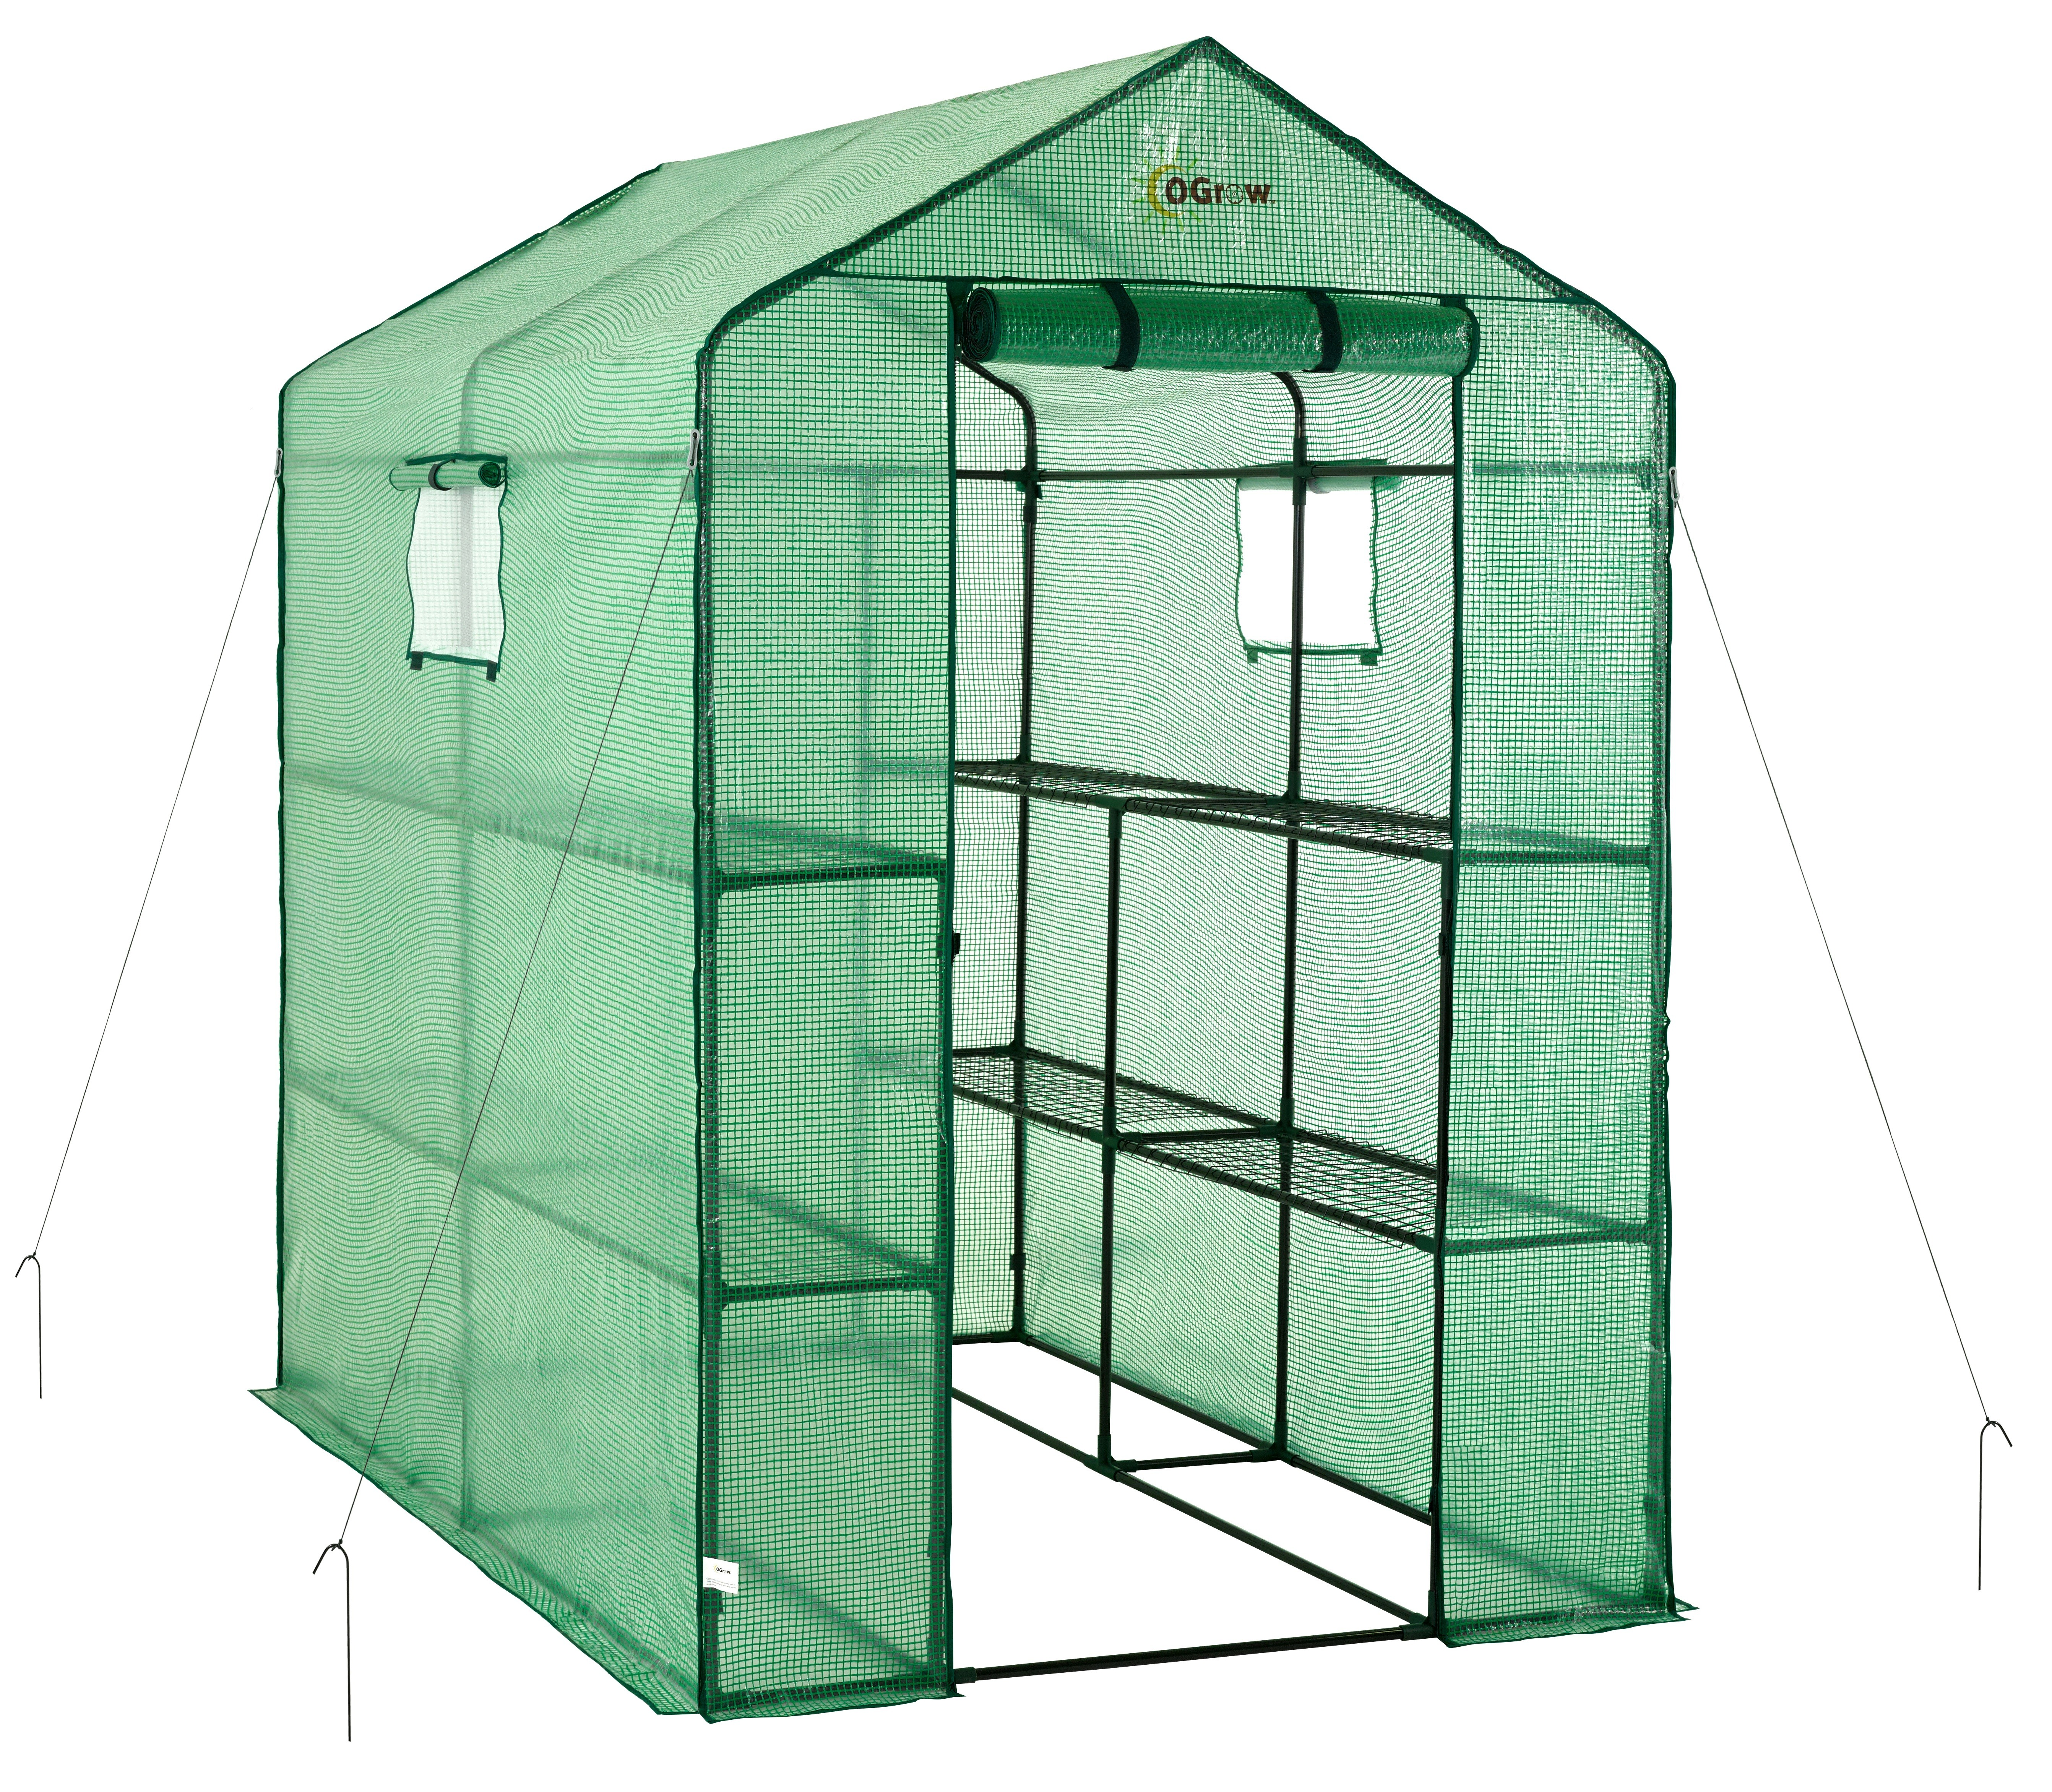 "Ogrow Portable Walk In Greenhouse - 2 Tier 8 Shelf Large Polythene Garden Greenhouse - 75"" H x 49"" W x 74"" D"